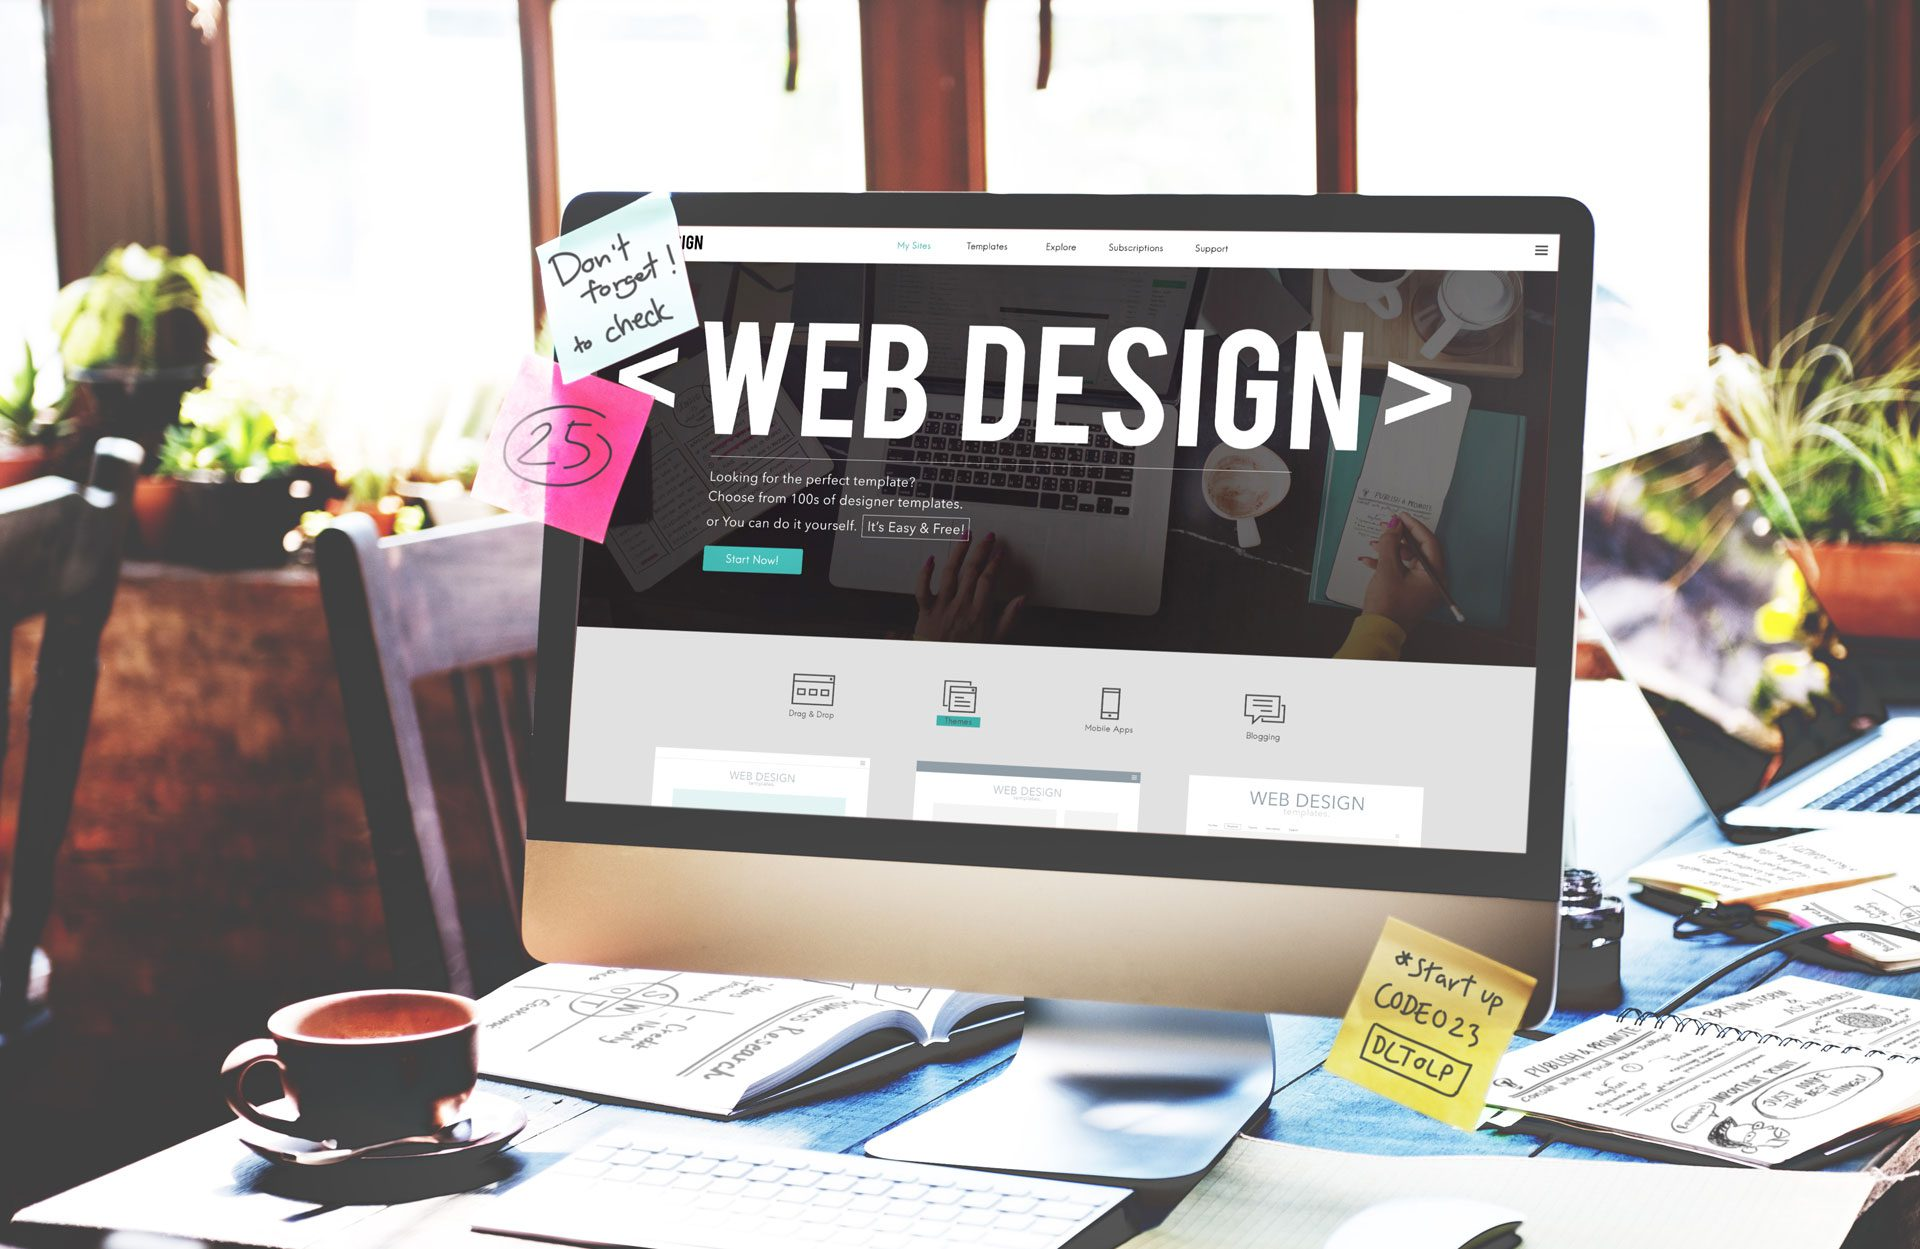 Web Design best practices by Tribu